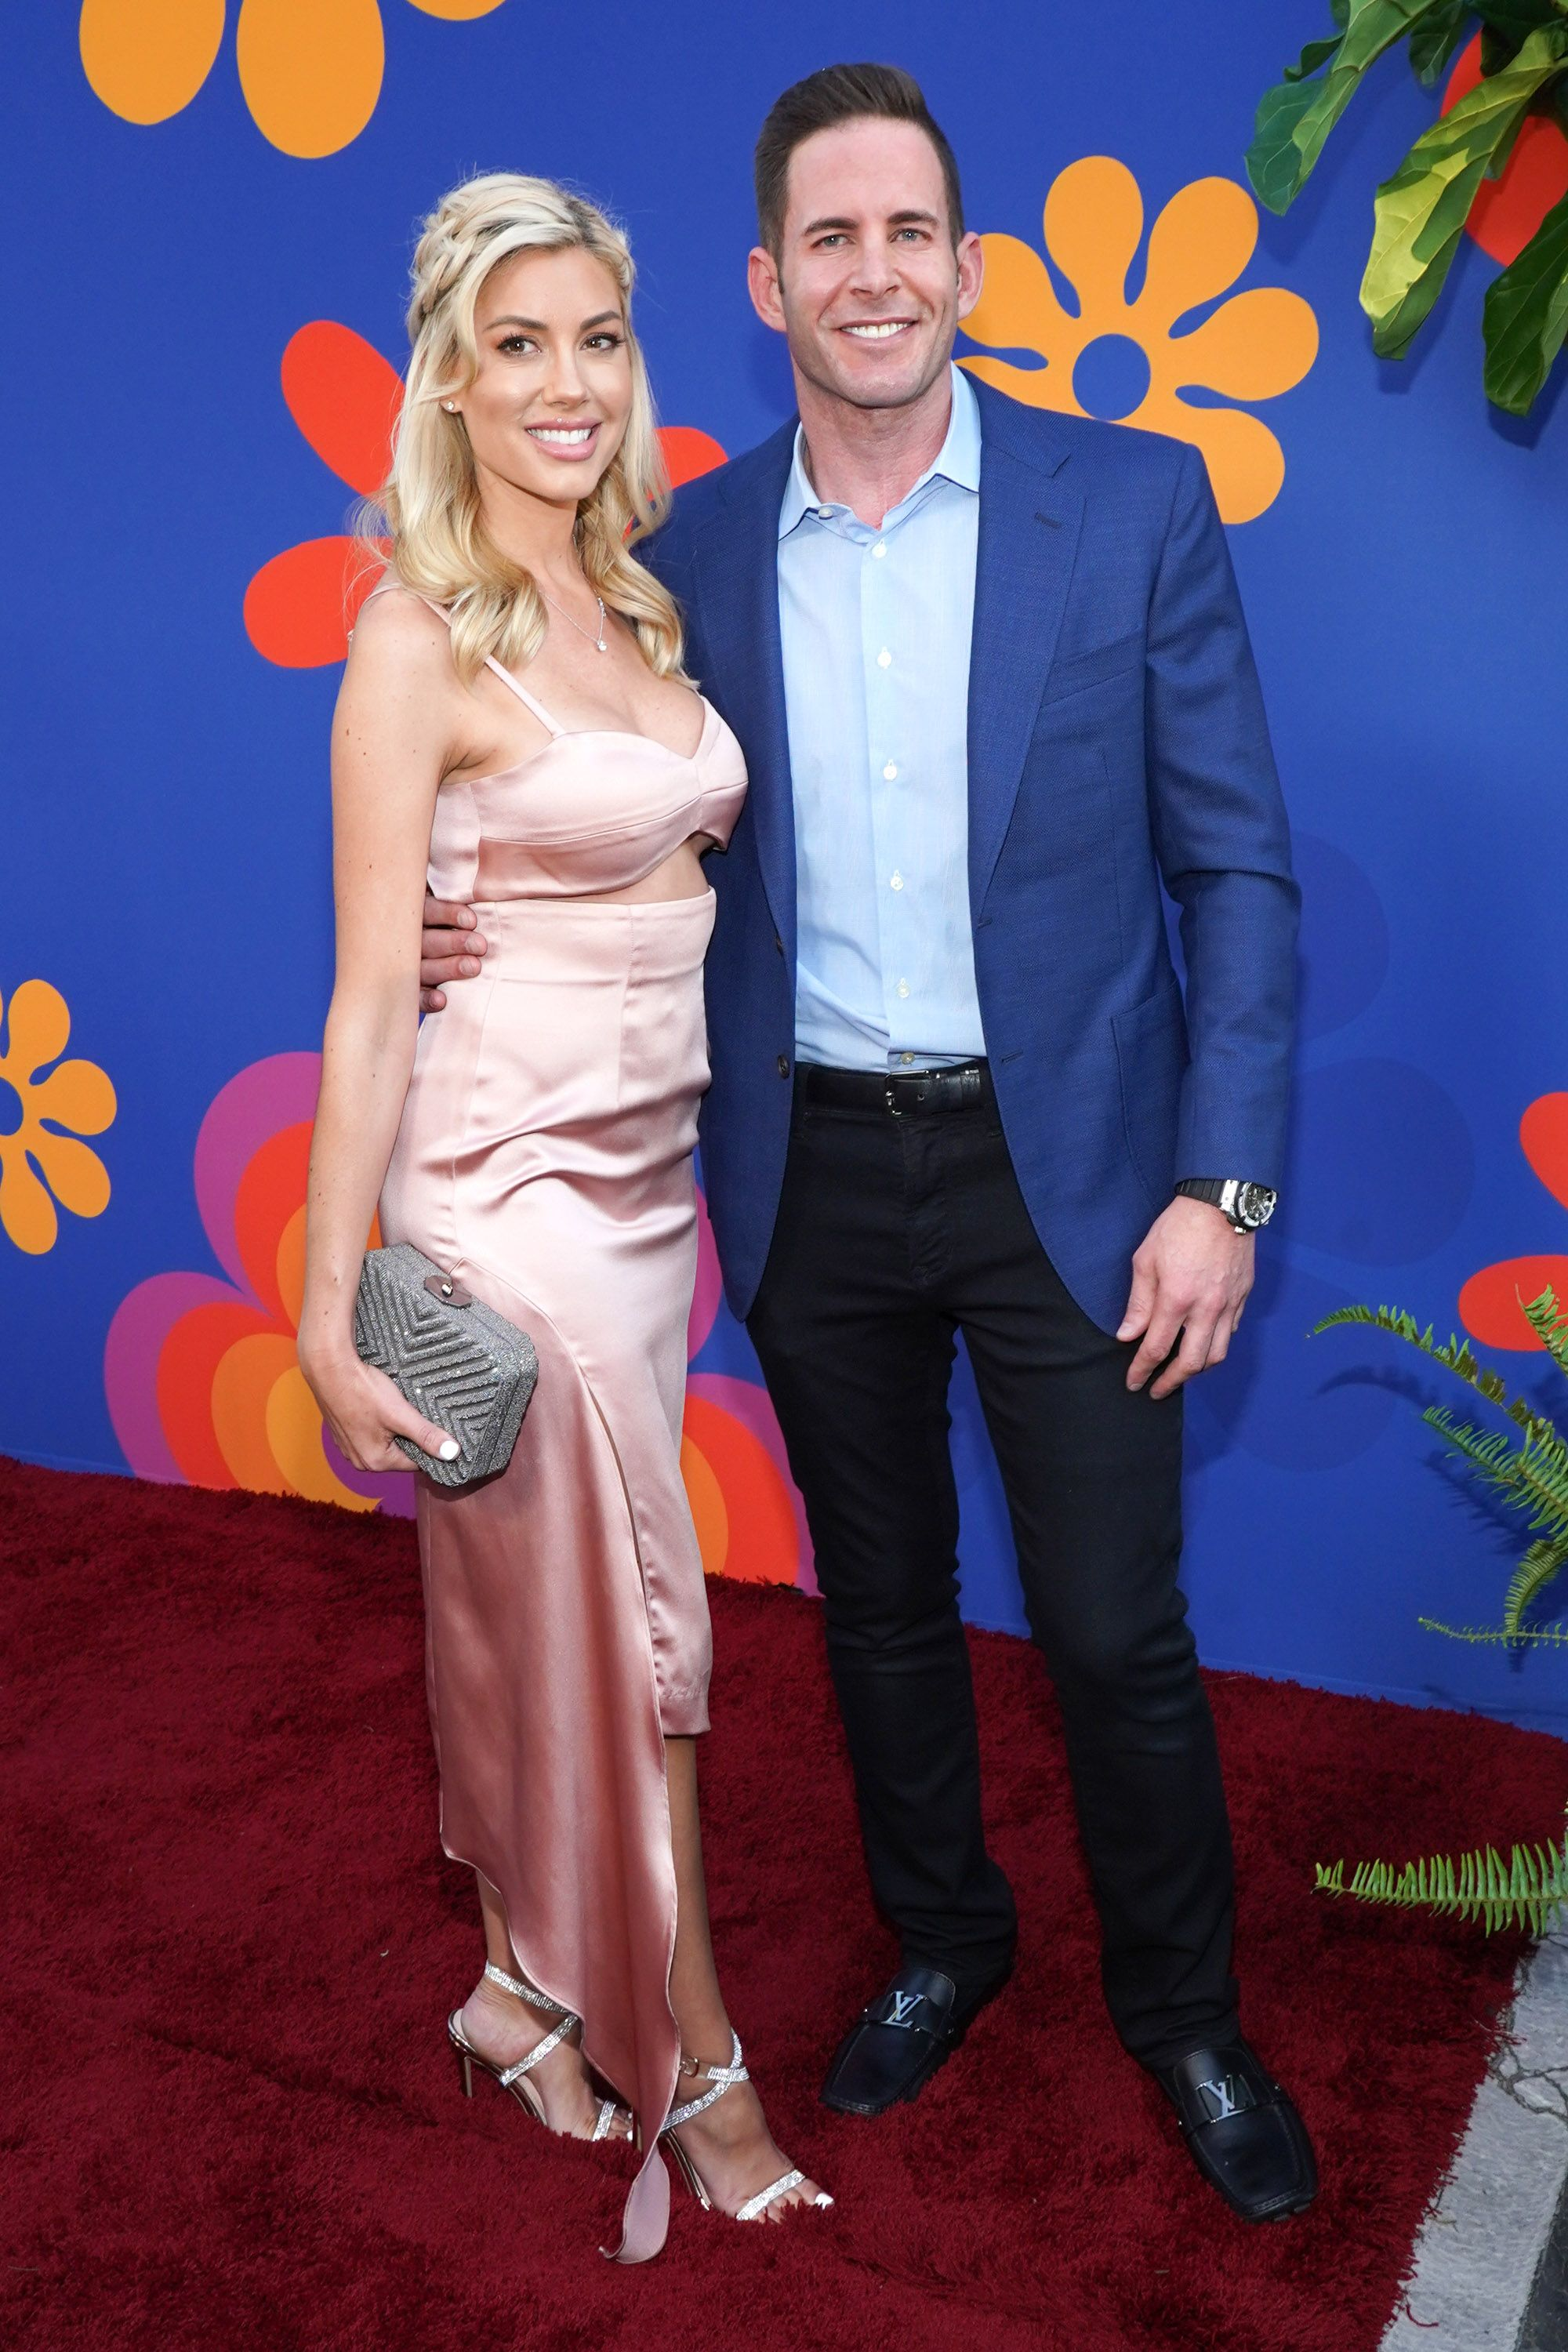 """Heather Ray Young and Tarek El Moussa attending """"A Very Brady Renovation"""" September 5, 2019 